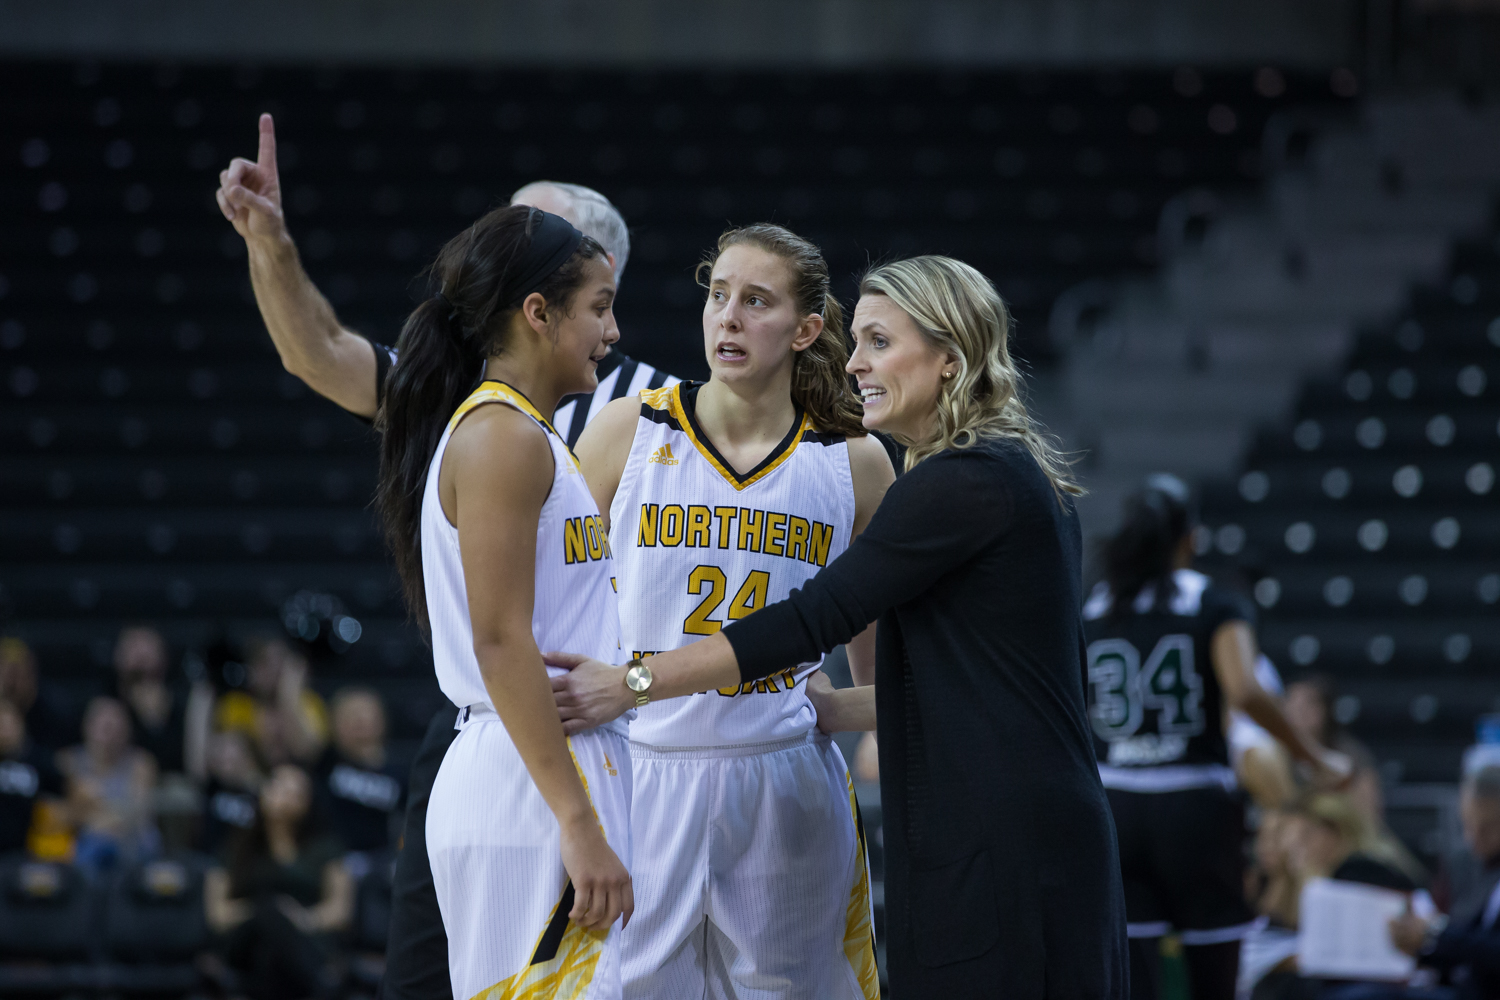 Grace White (1) and Molly Glick (24) talk to Head Coach Camryn Whitaker during a free throw in the game against Cleveland State.